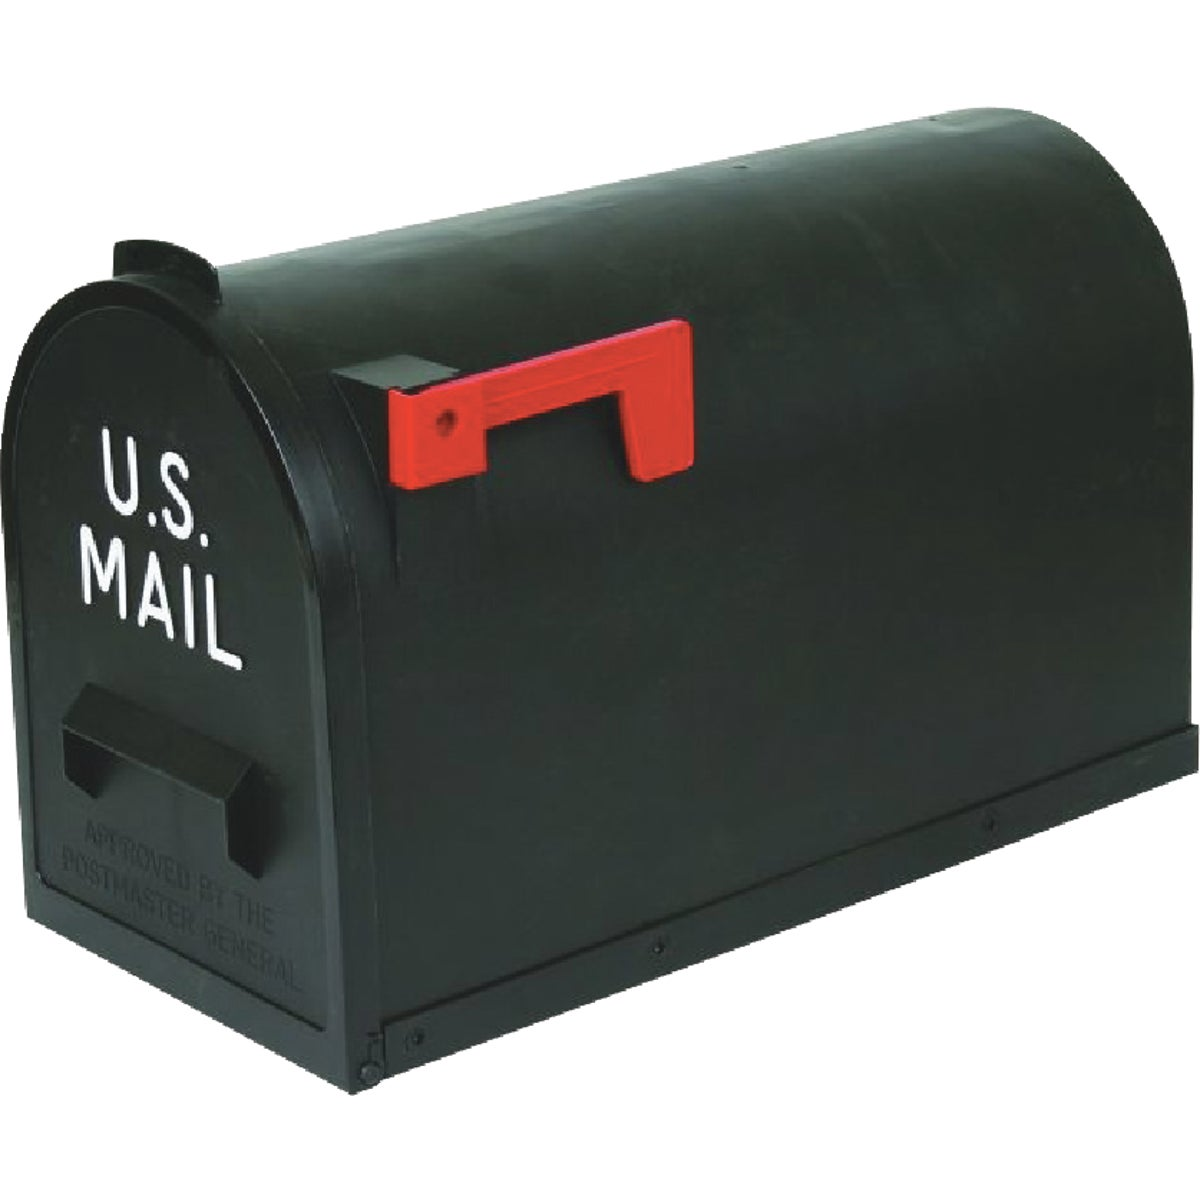 #2 BLACK POLY MAILBOX - TR-7001 by Flambeau Products Co